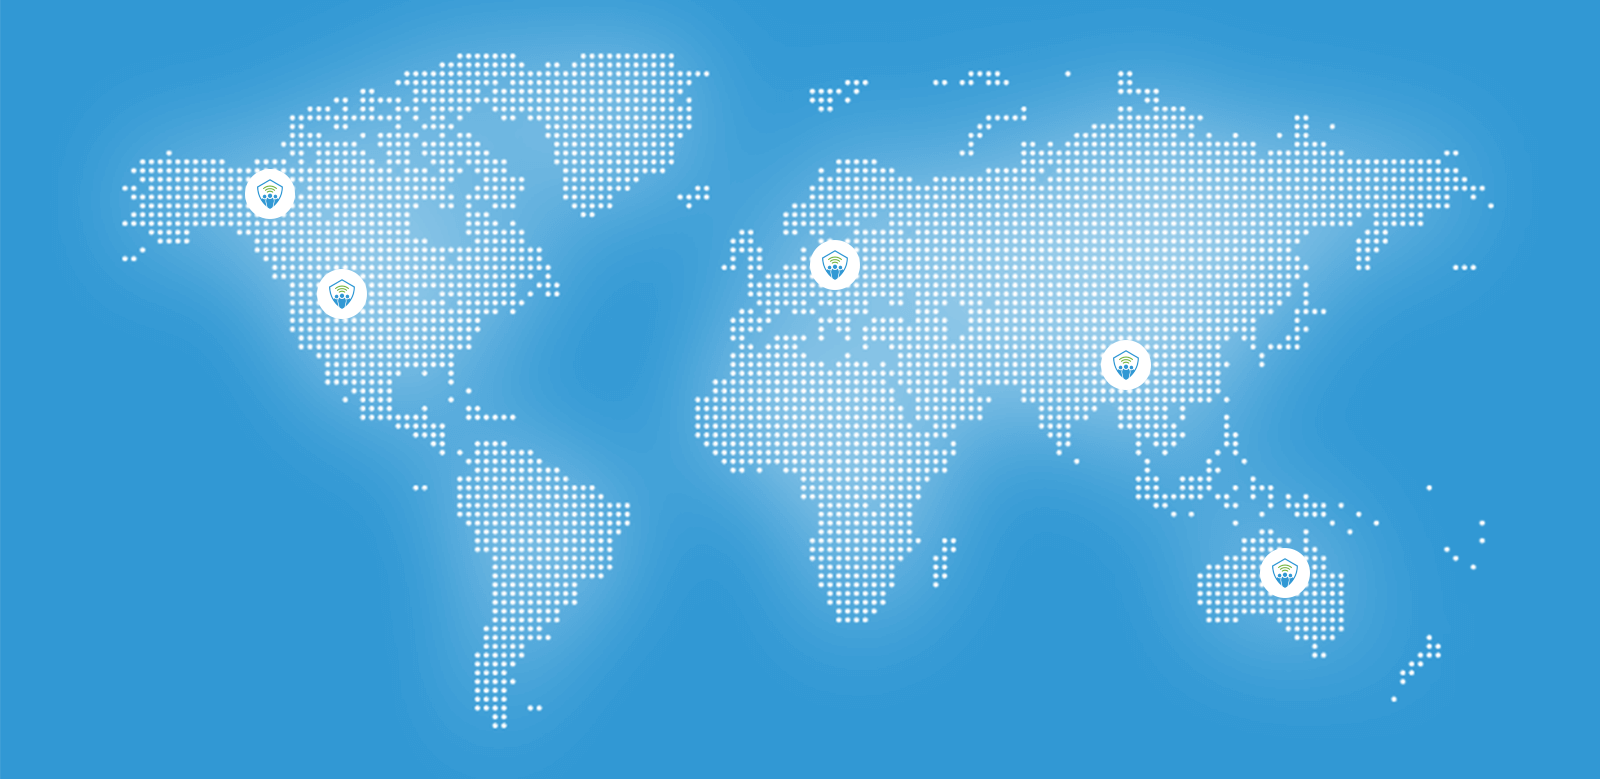 Map of the world with TeamAlert logos in Canada, United States, Europe, Asia, and Australia signifying where TeamAlert is being used across the world